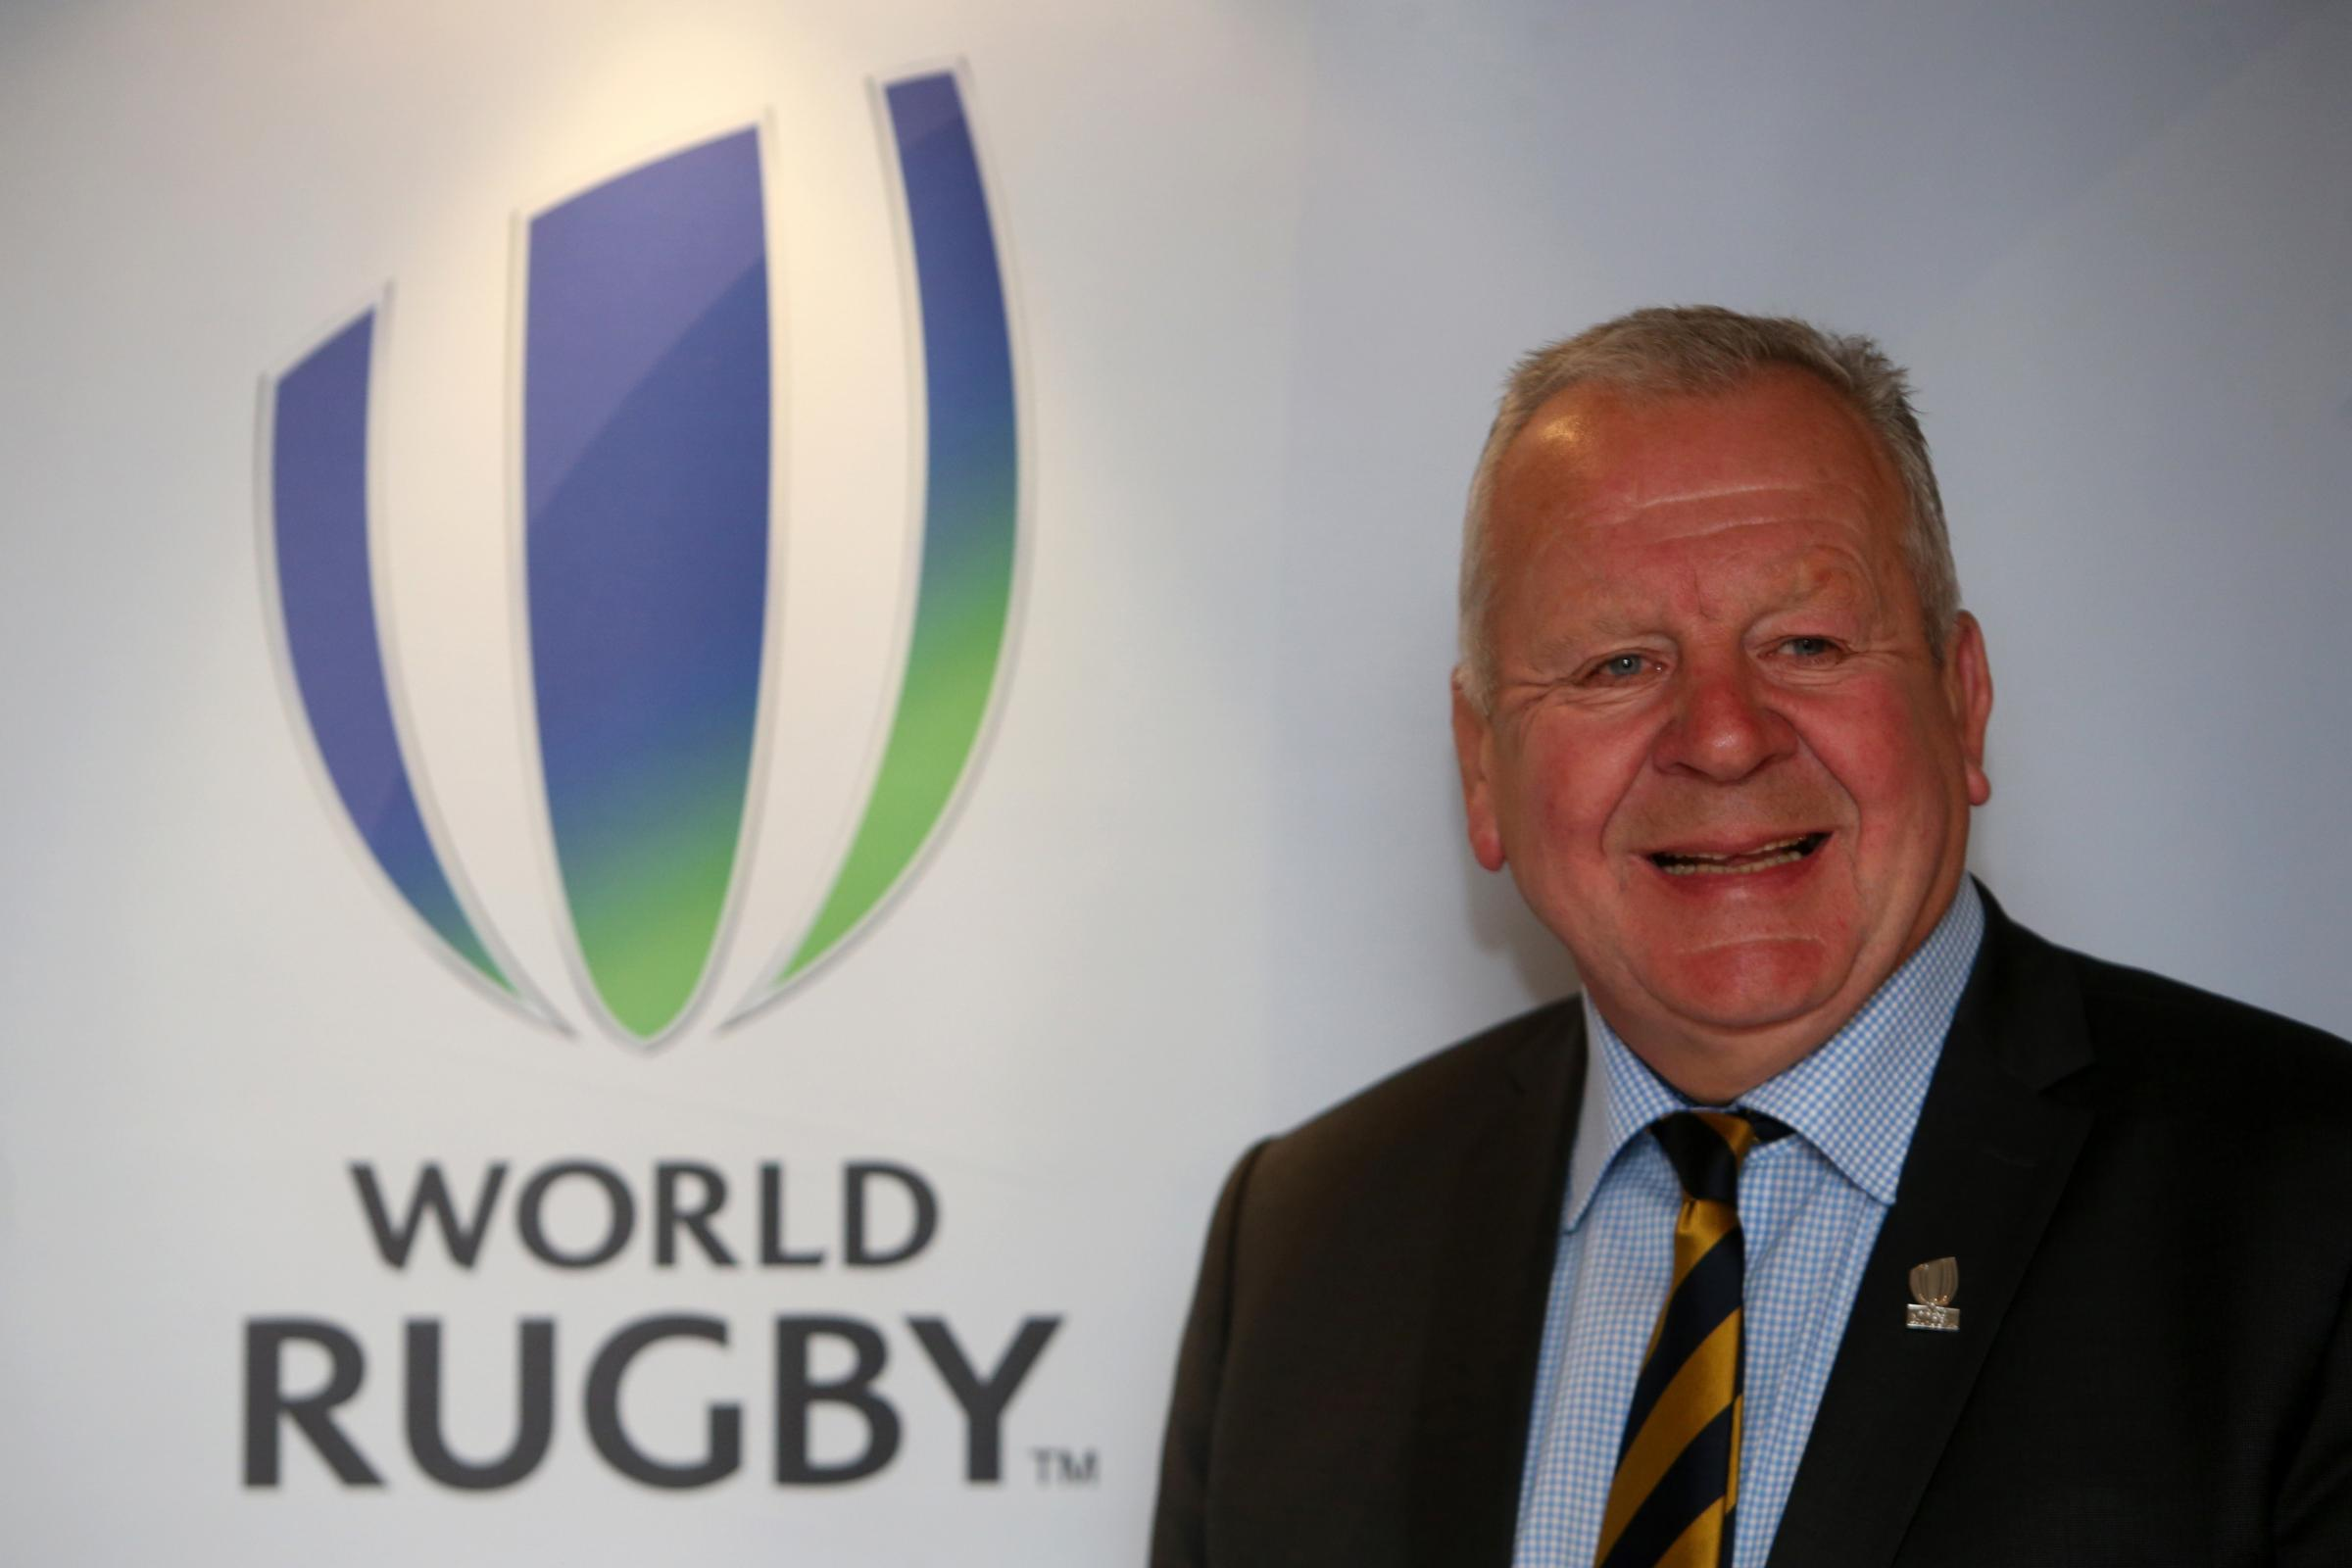 Bill Beaumont